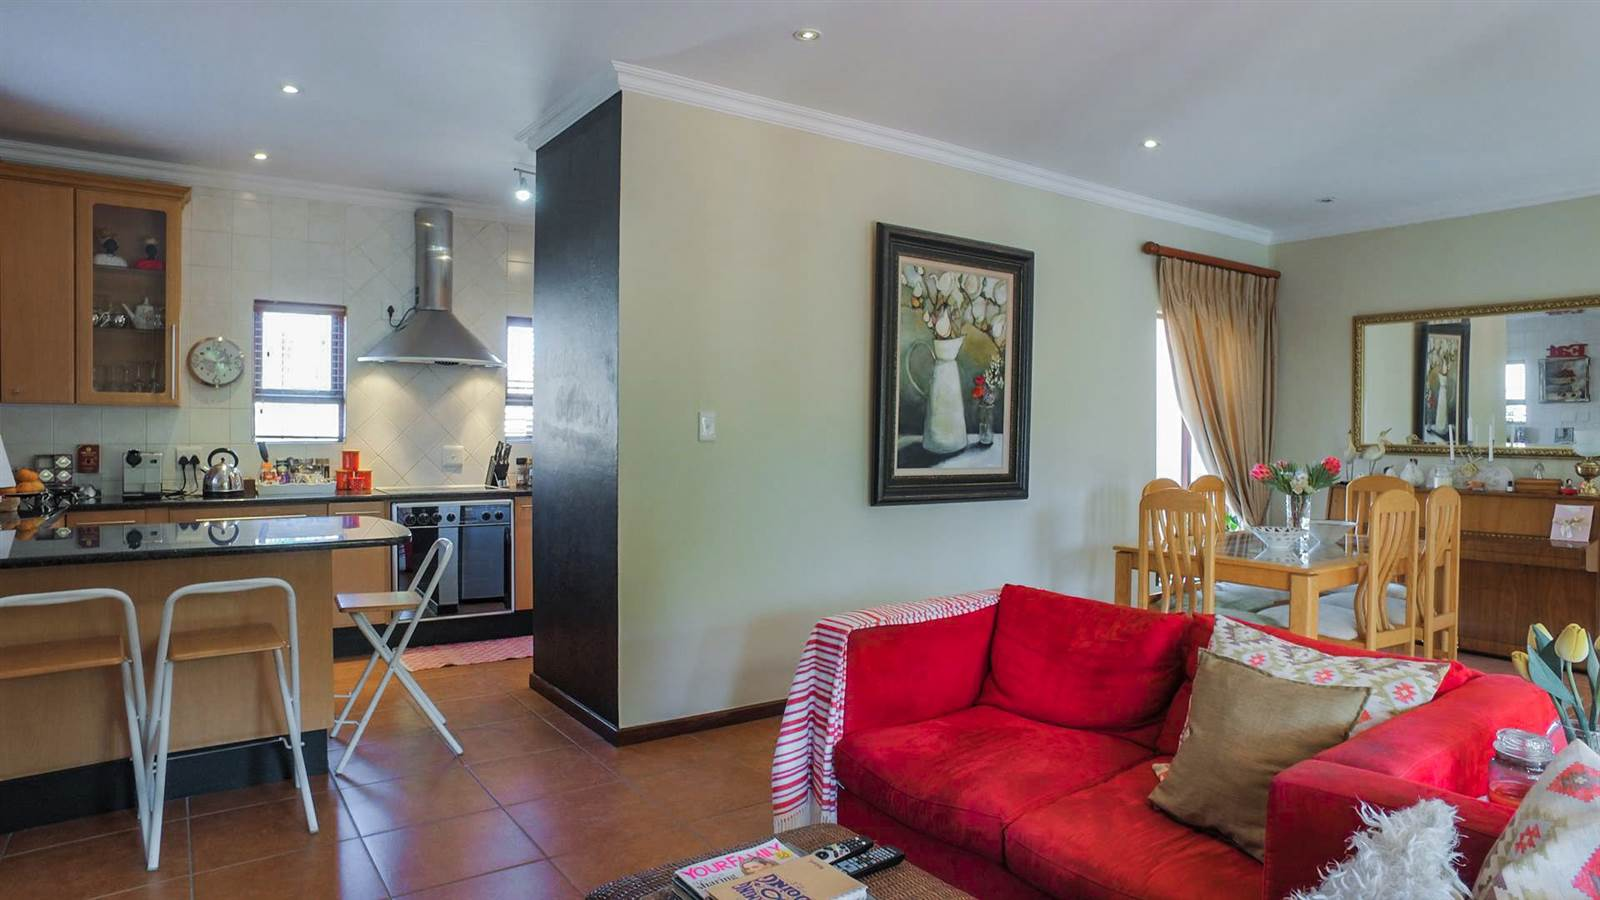 4 Bedroom Townhouse for sale in Mulbarton ENT0067436 : photo#14